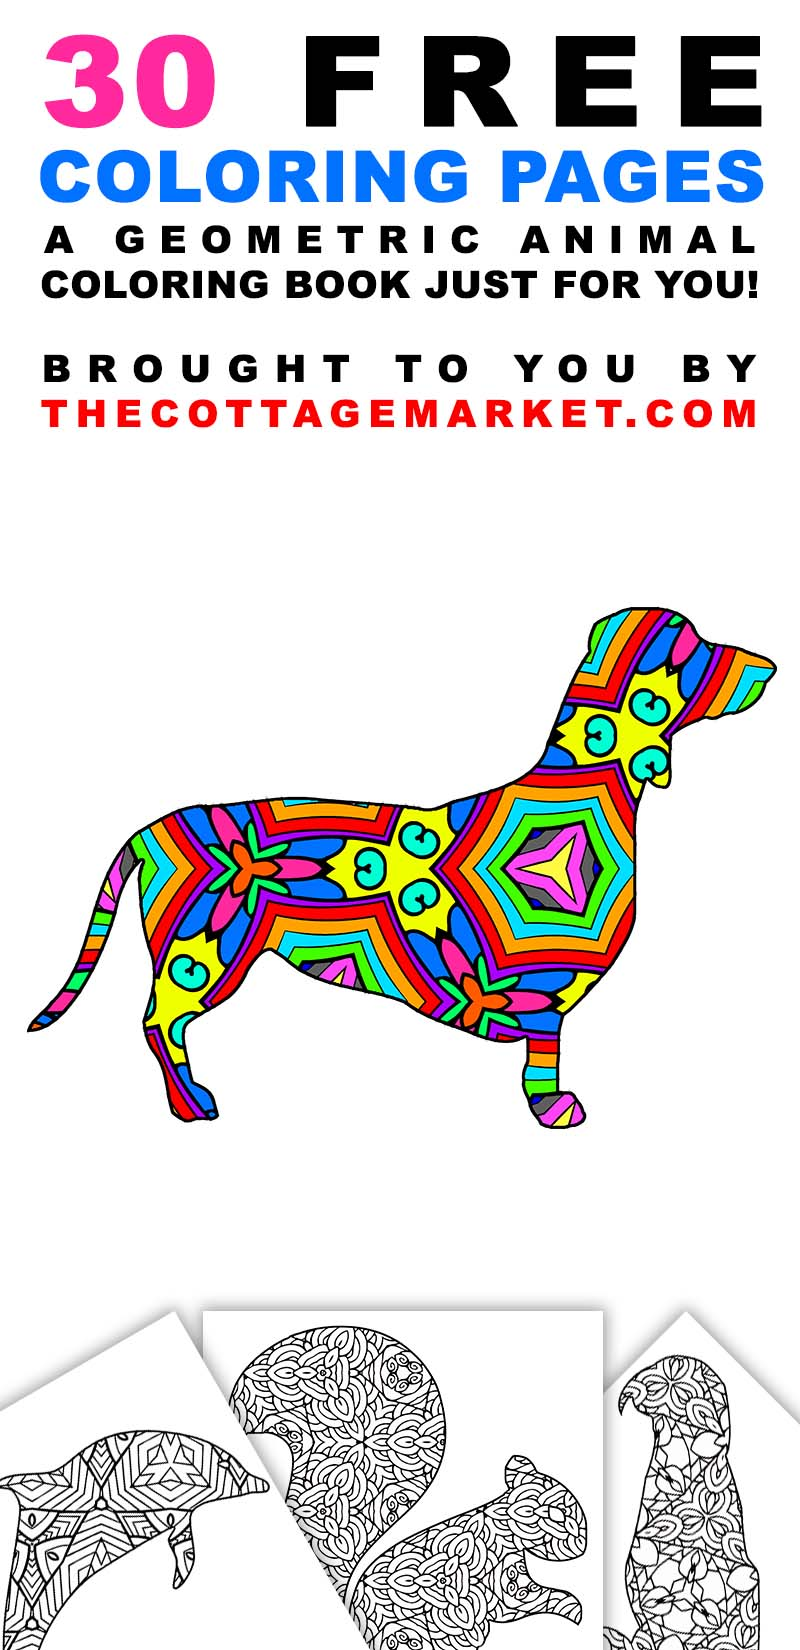 30 Free Coloring Pages /// A Geometric Animal Coloring Book Just for ...